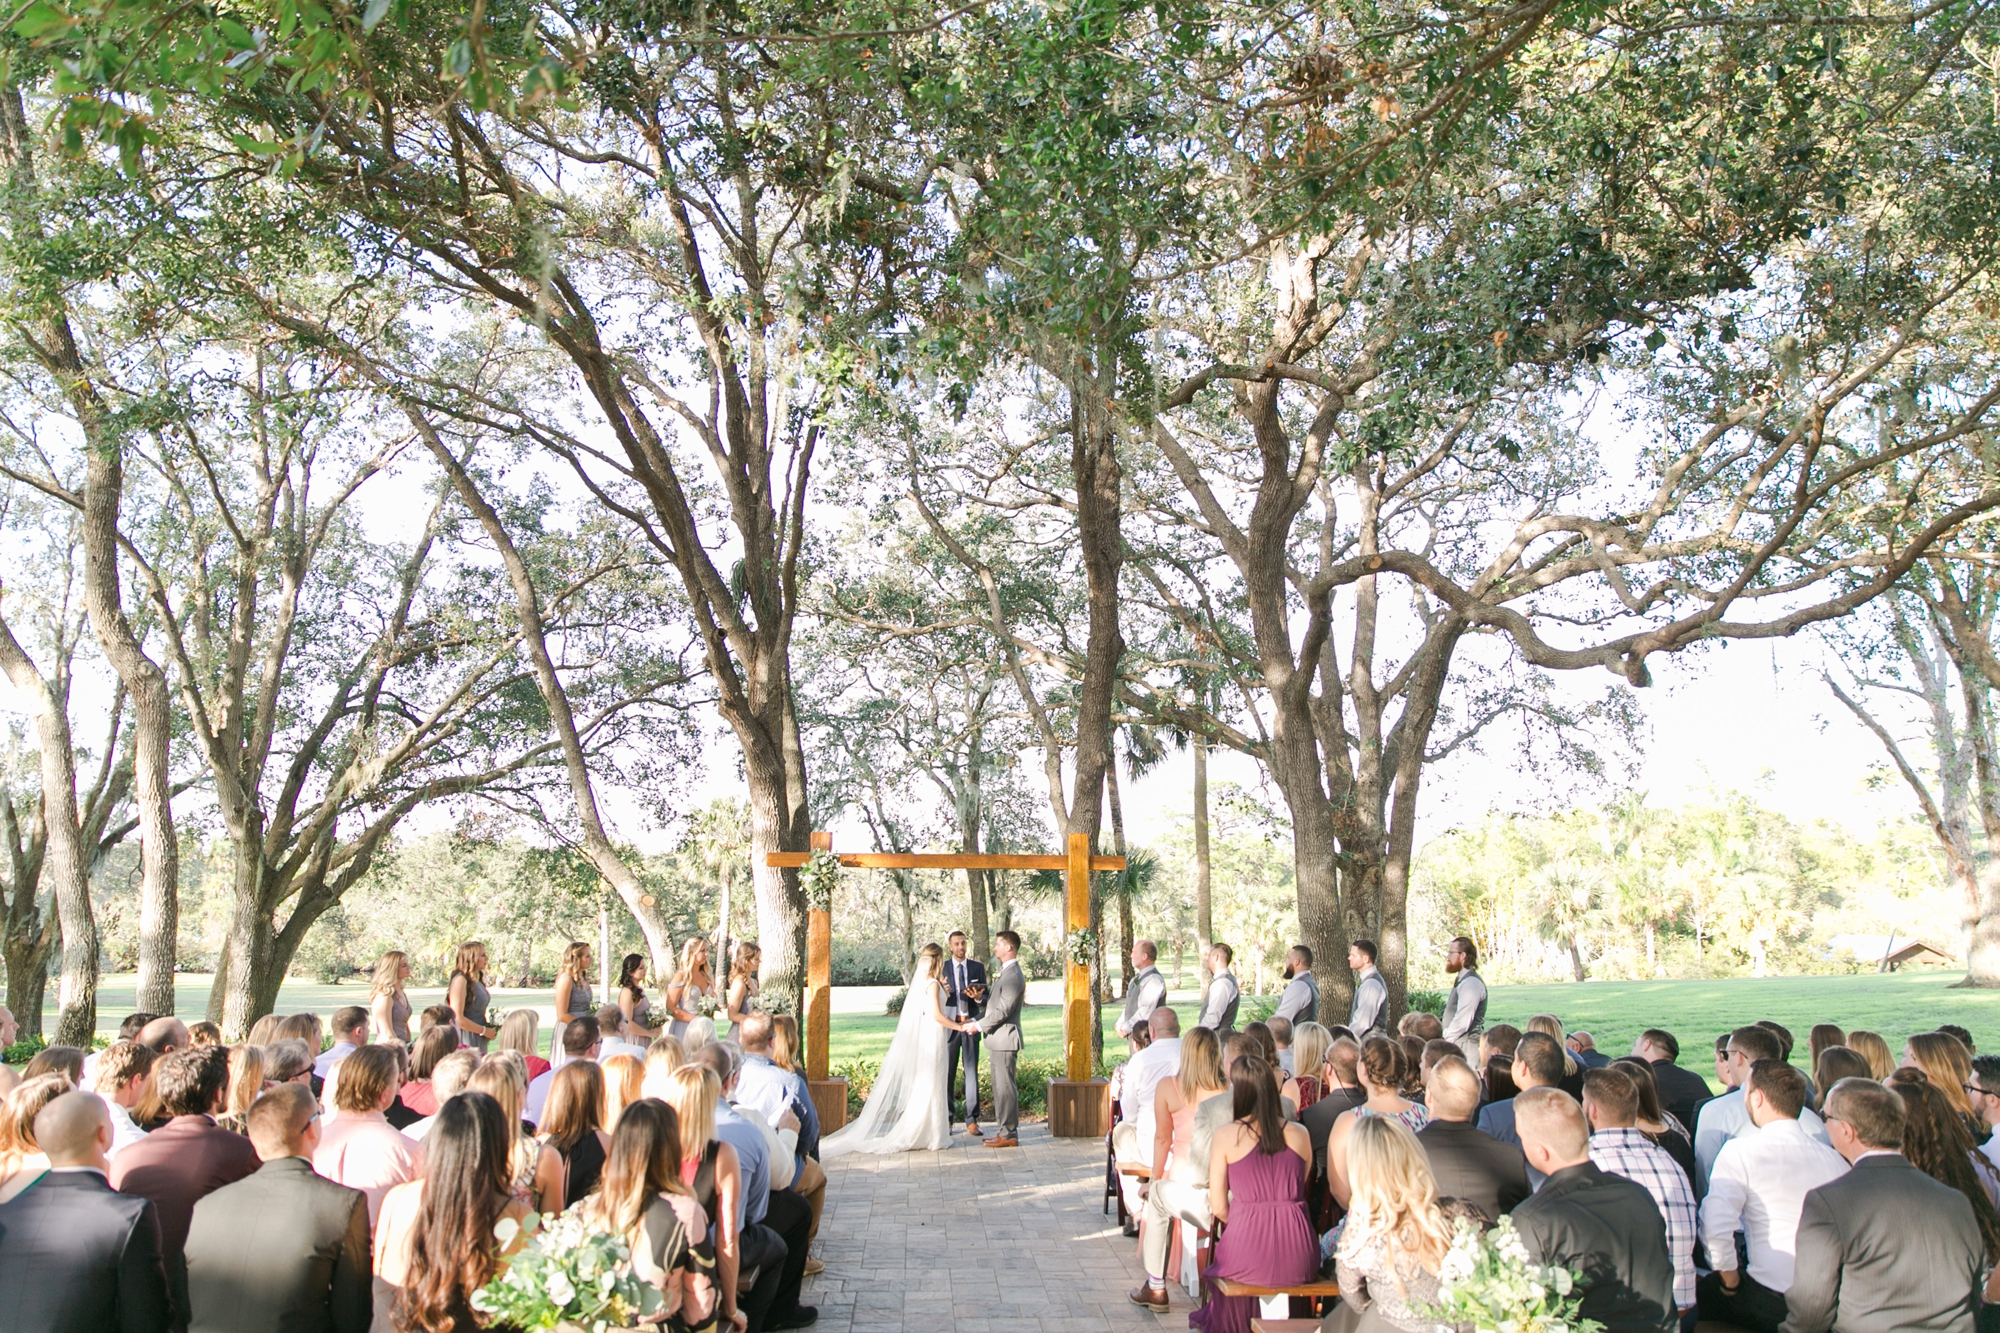 outdoor wedding ceremony in woods in florida